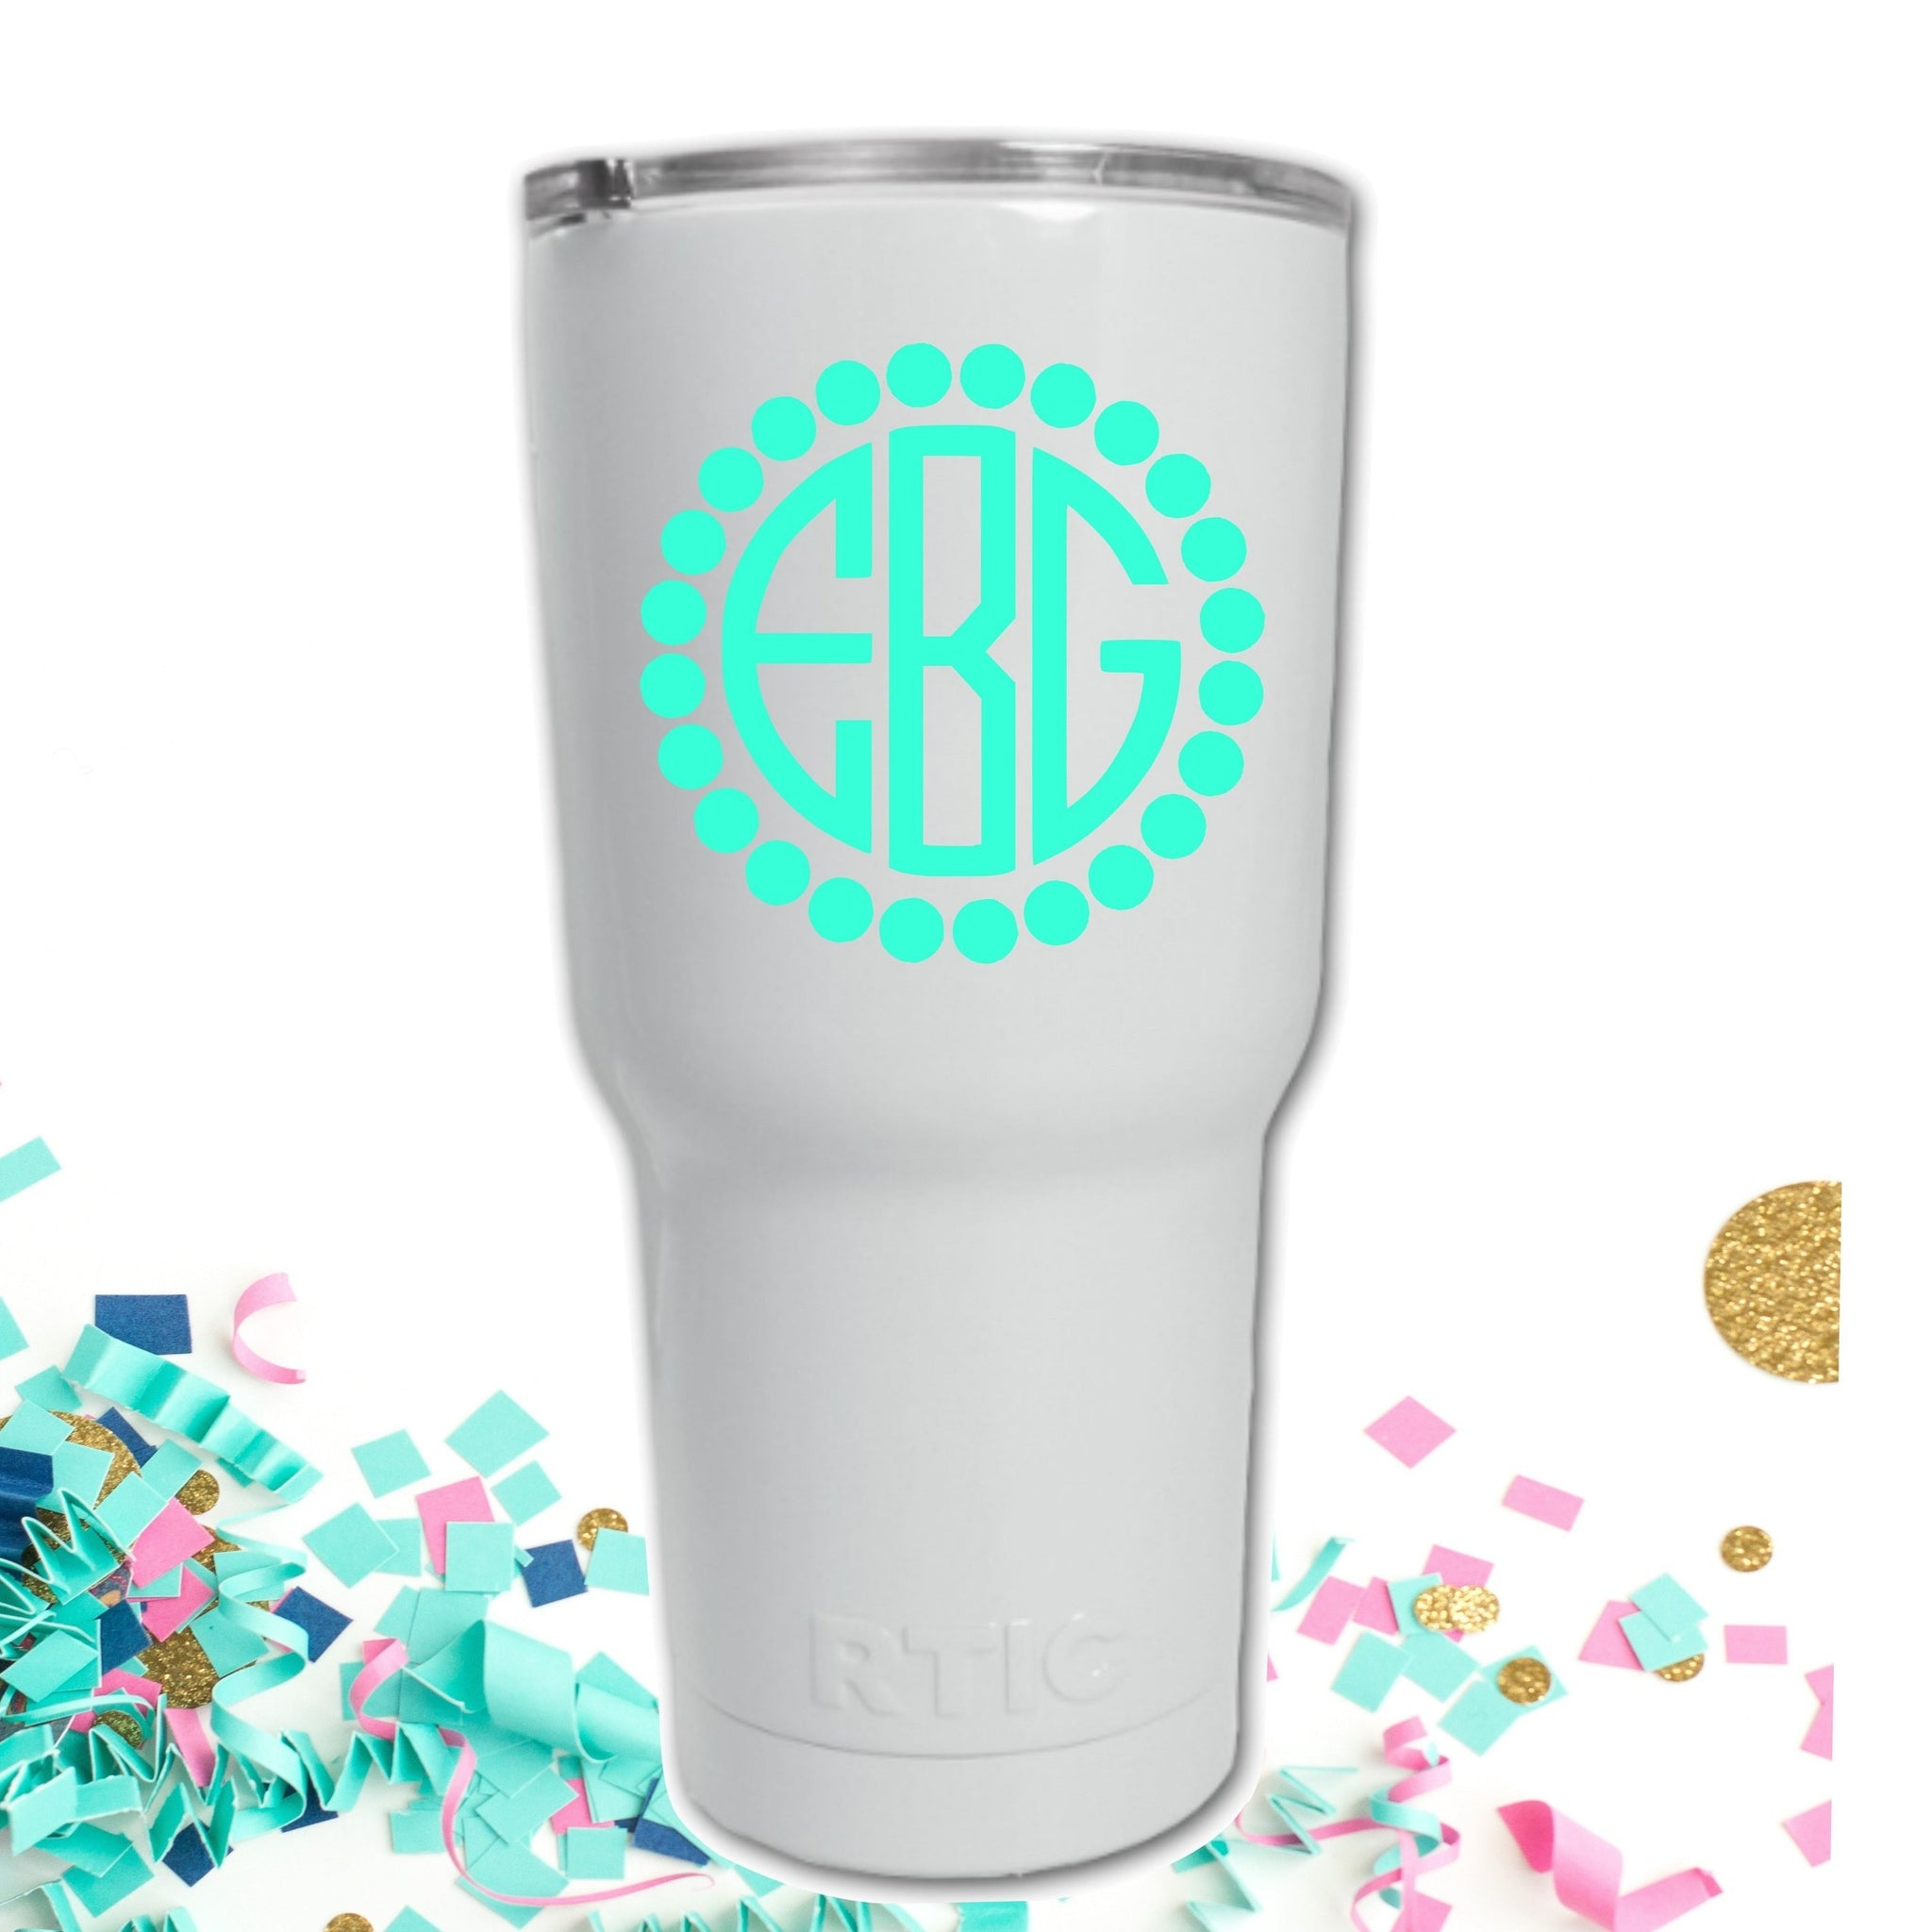 Preppy Monogram Decal for Tumblers or S'well style bottle